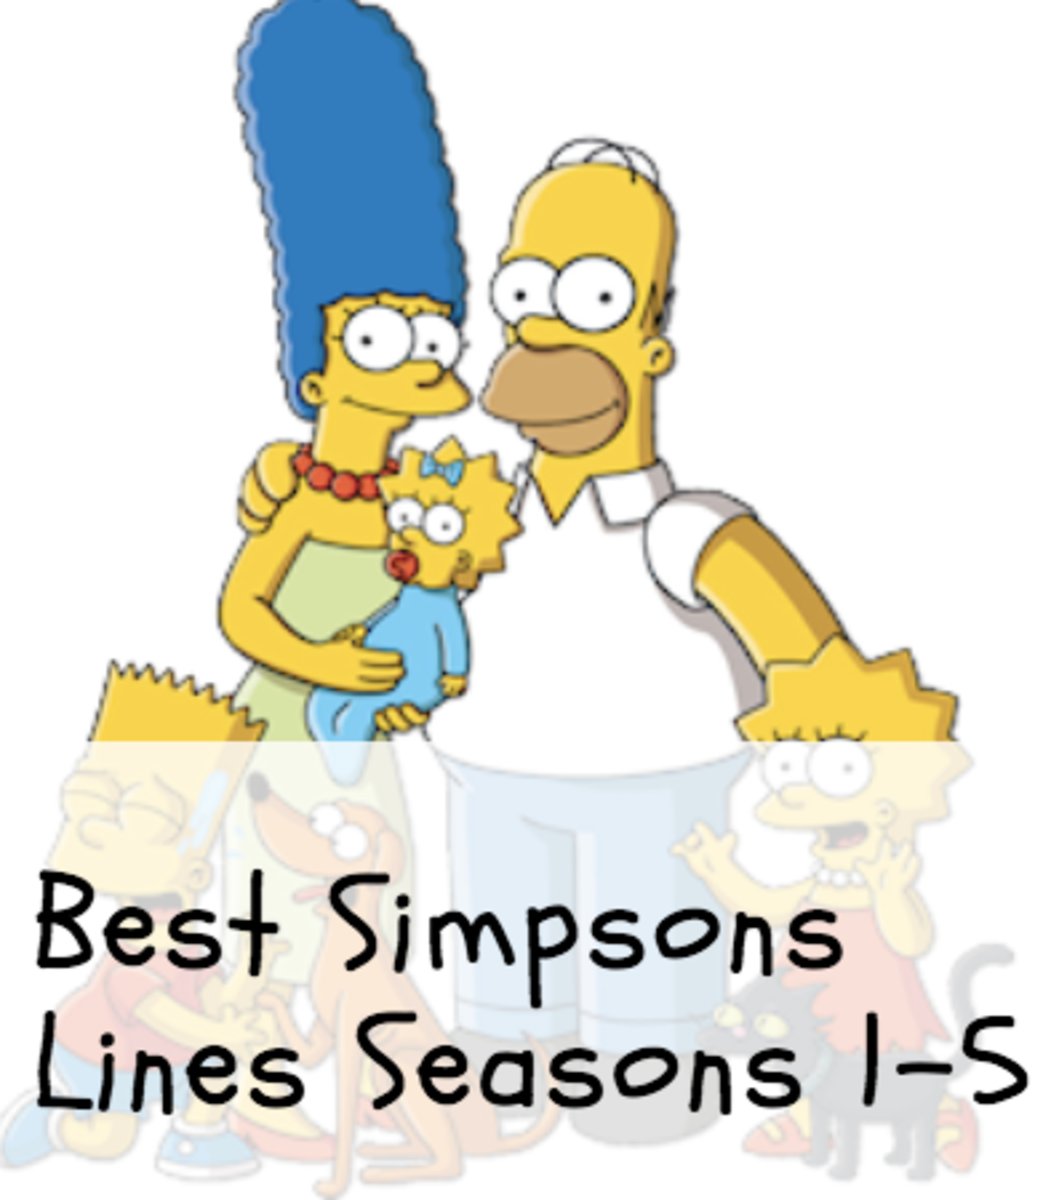 Best Simpsons Quotes Seasons 1-5